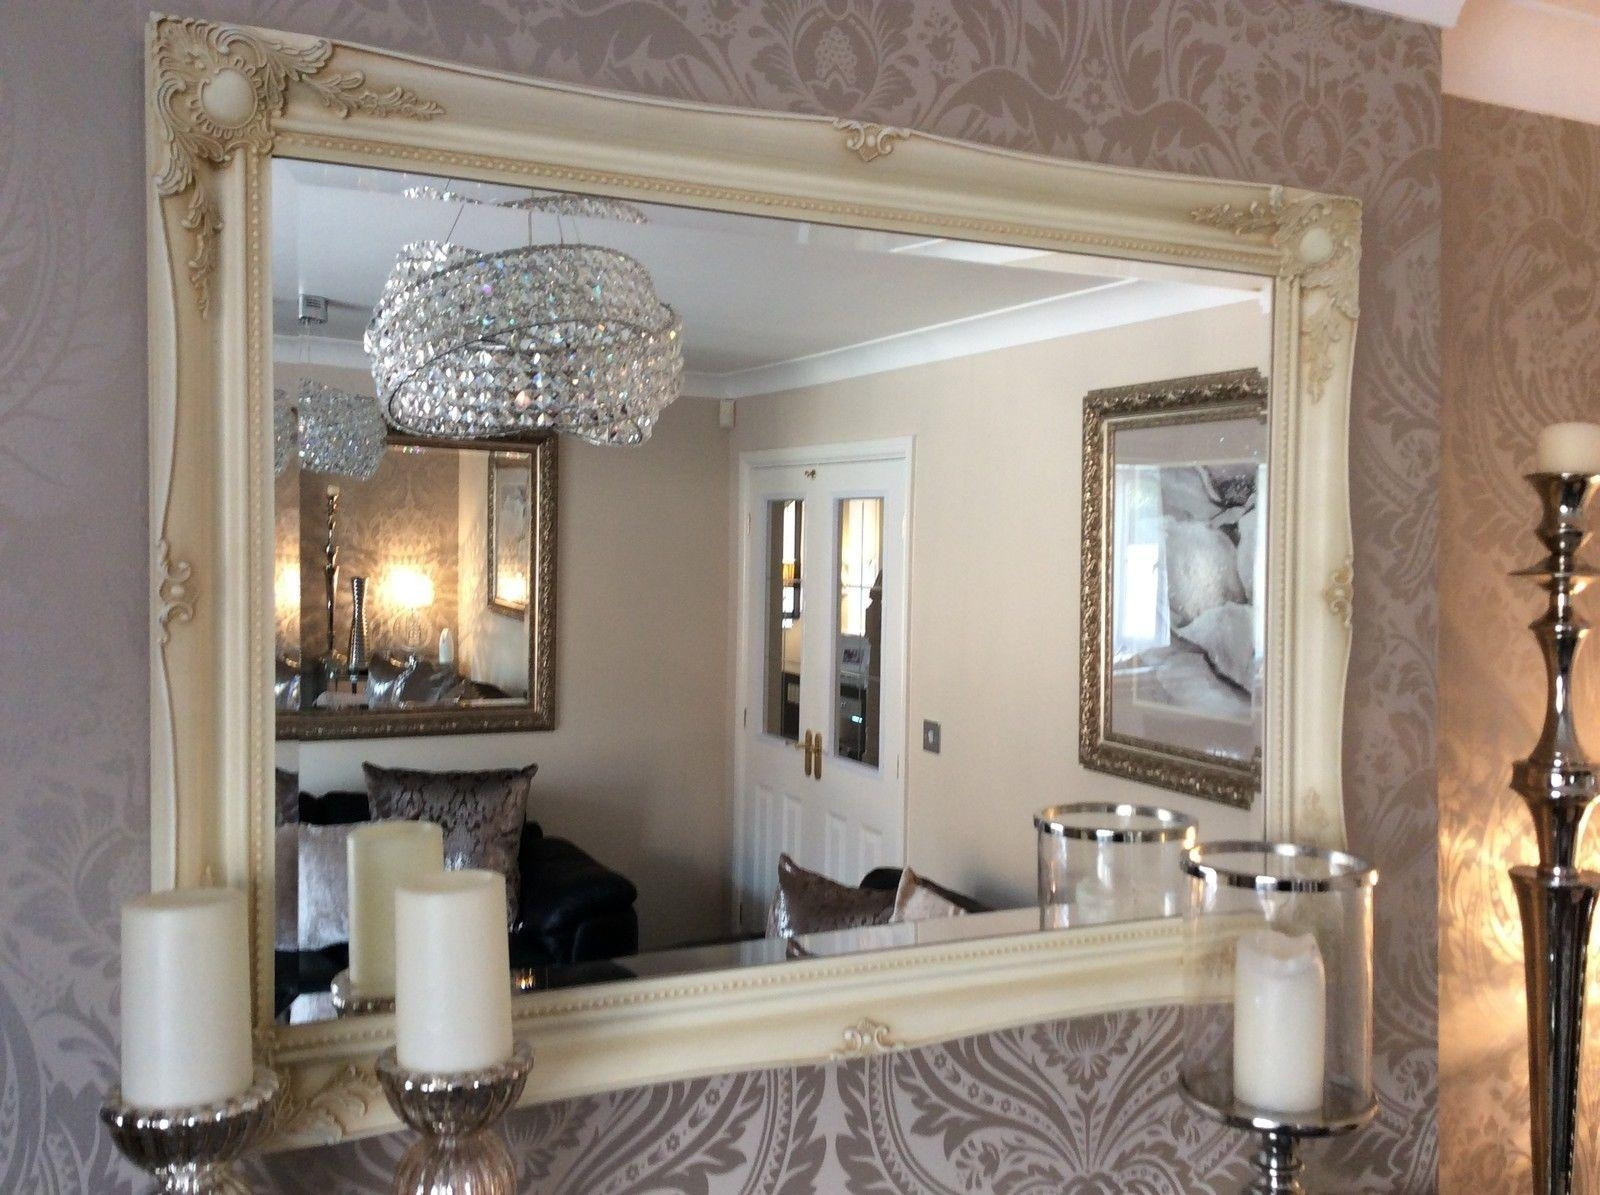 Pictures: Wall Mirrors For Sale, – Home Decoration Ideas Intended For Ceiling Mirrors For Sale (Image 17 of 20)